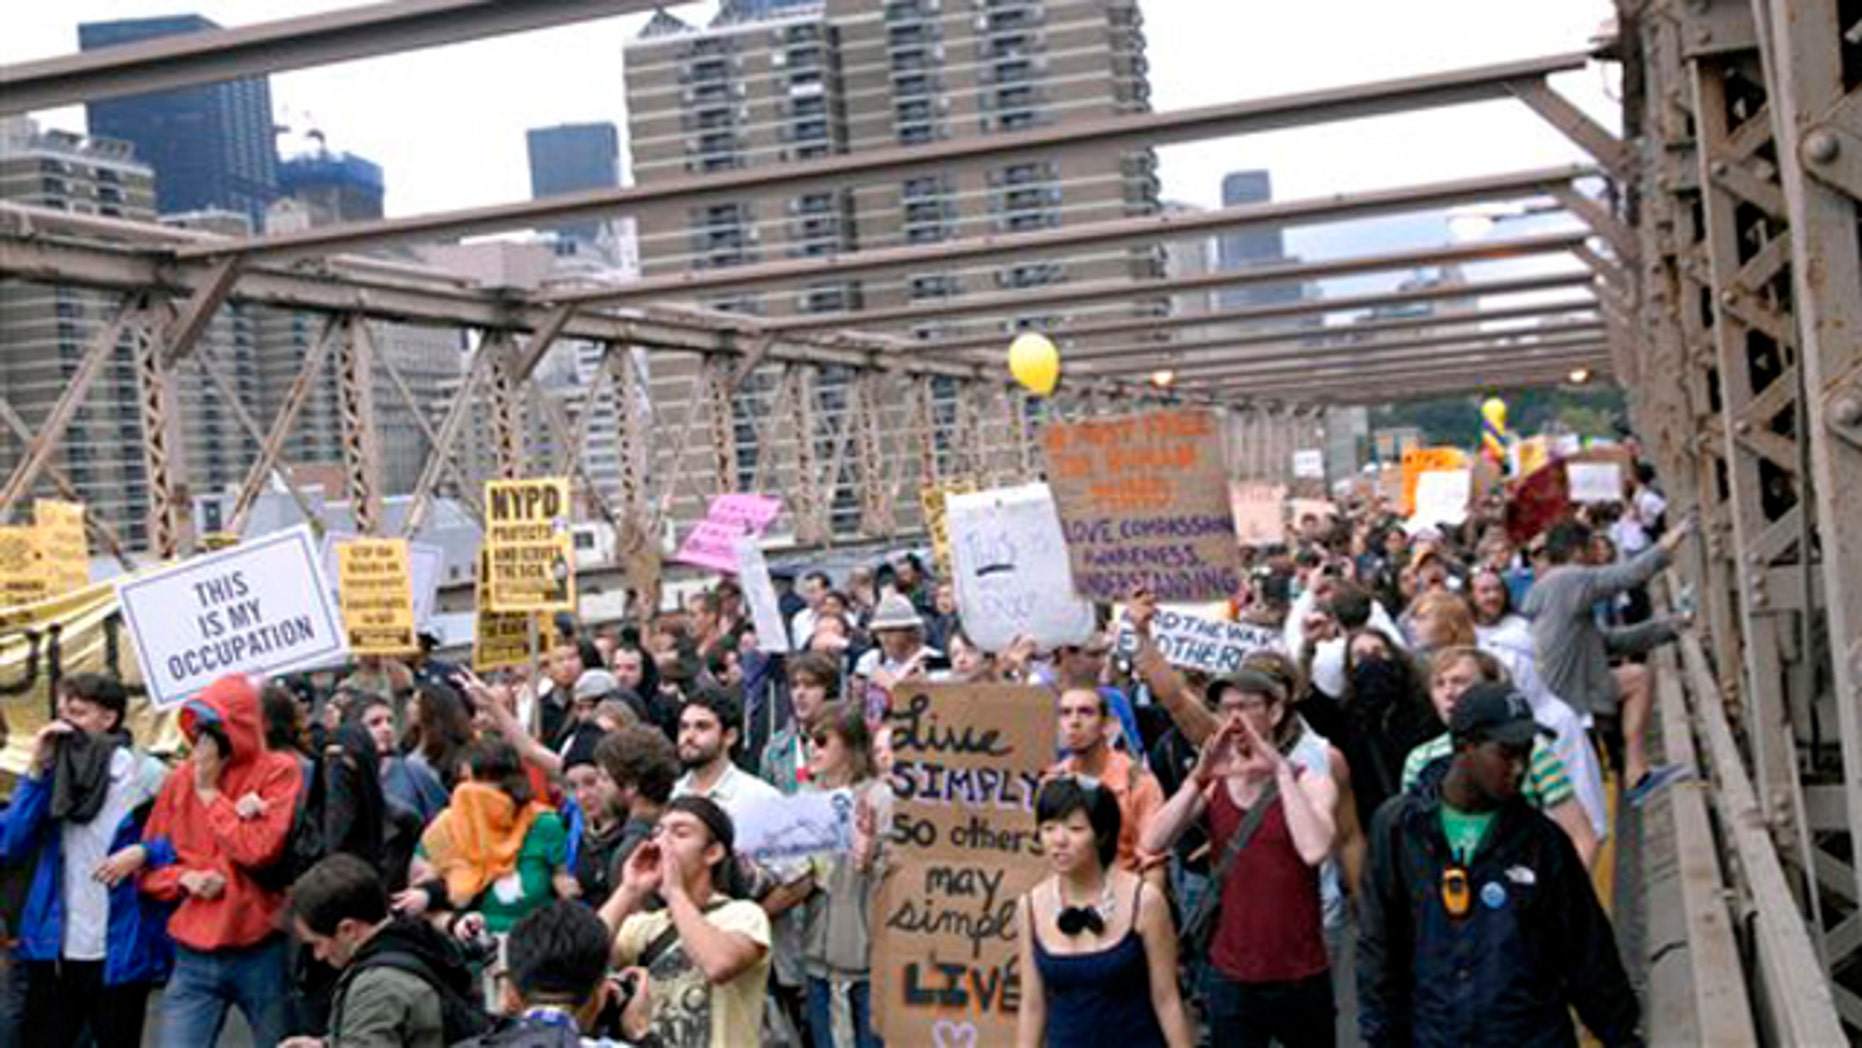 In this Oct. 1 photo, protesters walk onto New York's Brooklyn Bridge before police begin making arrests.